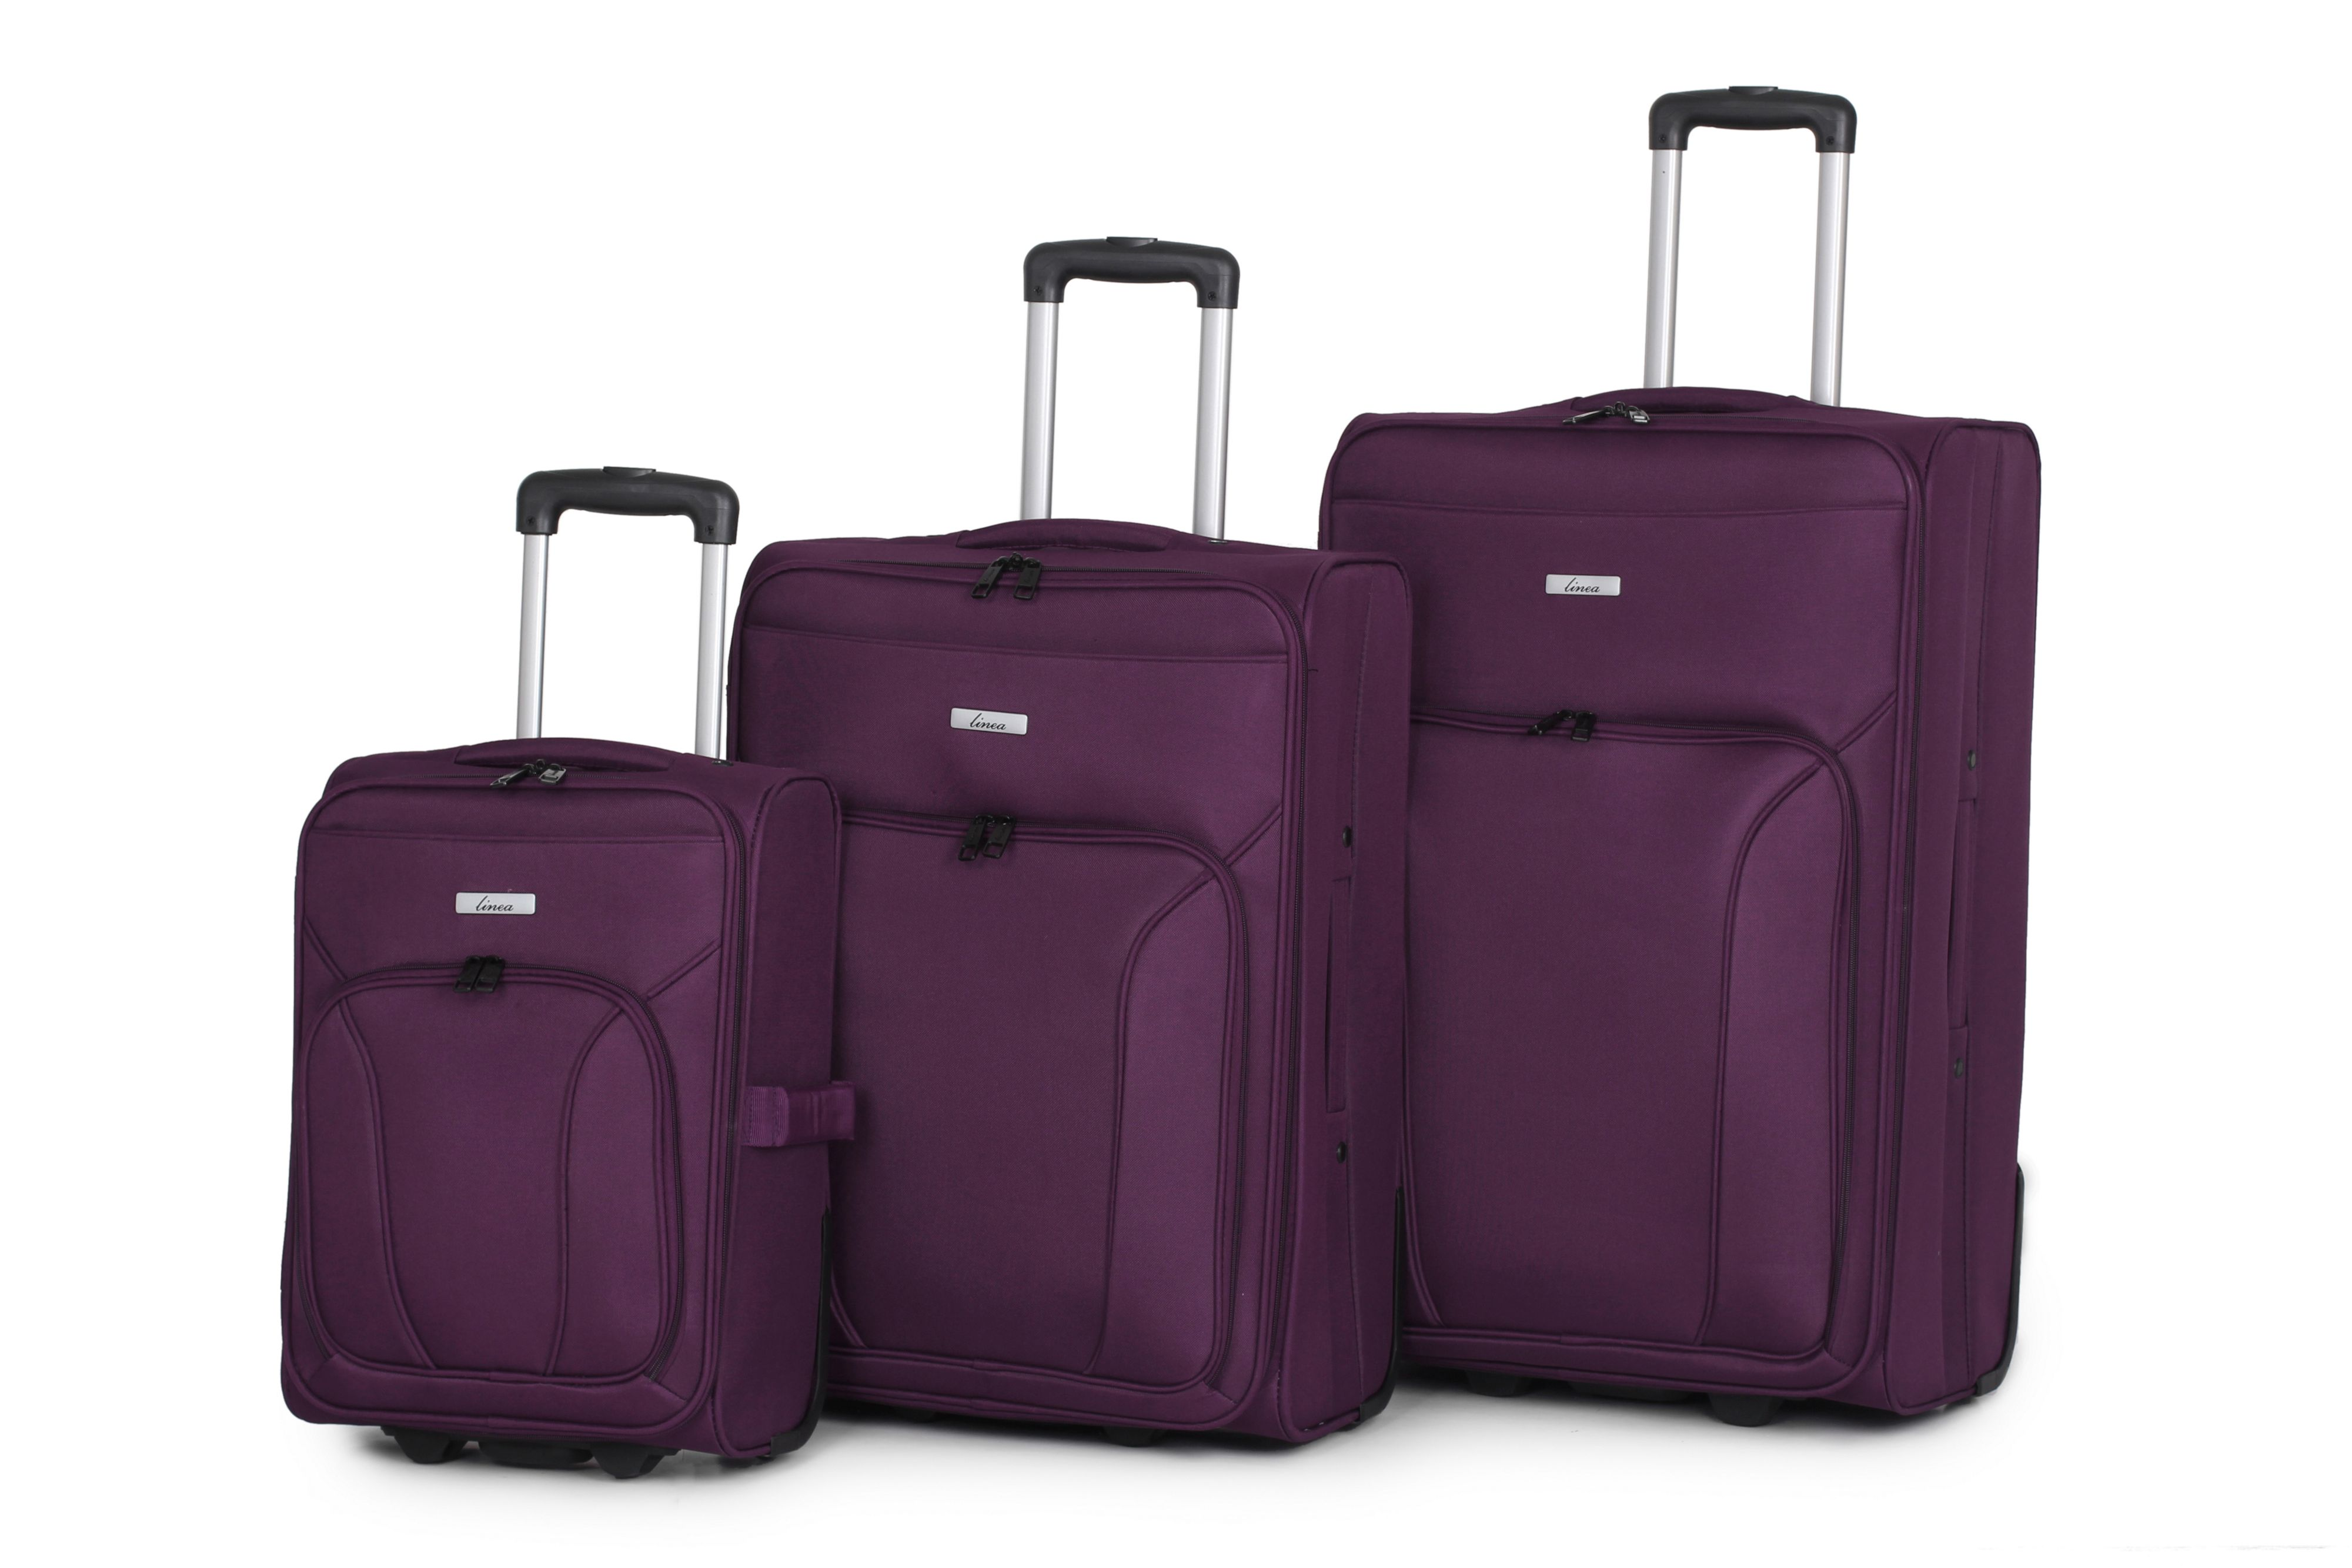 Linea Mila Purple 2 Wheel Soft Large Suitcase - House of Fraser